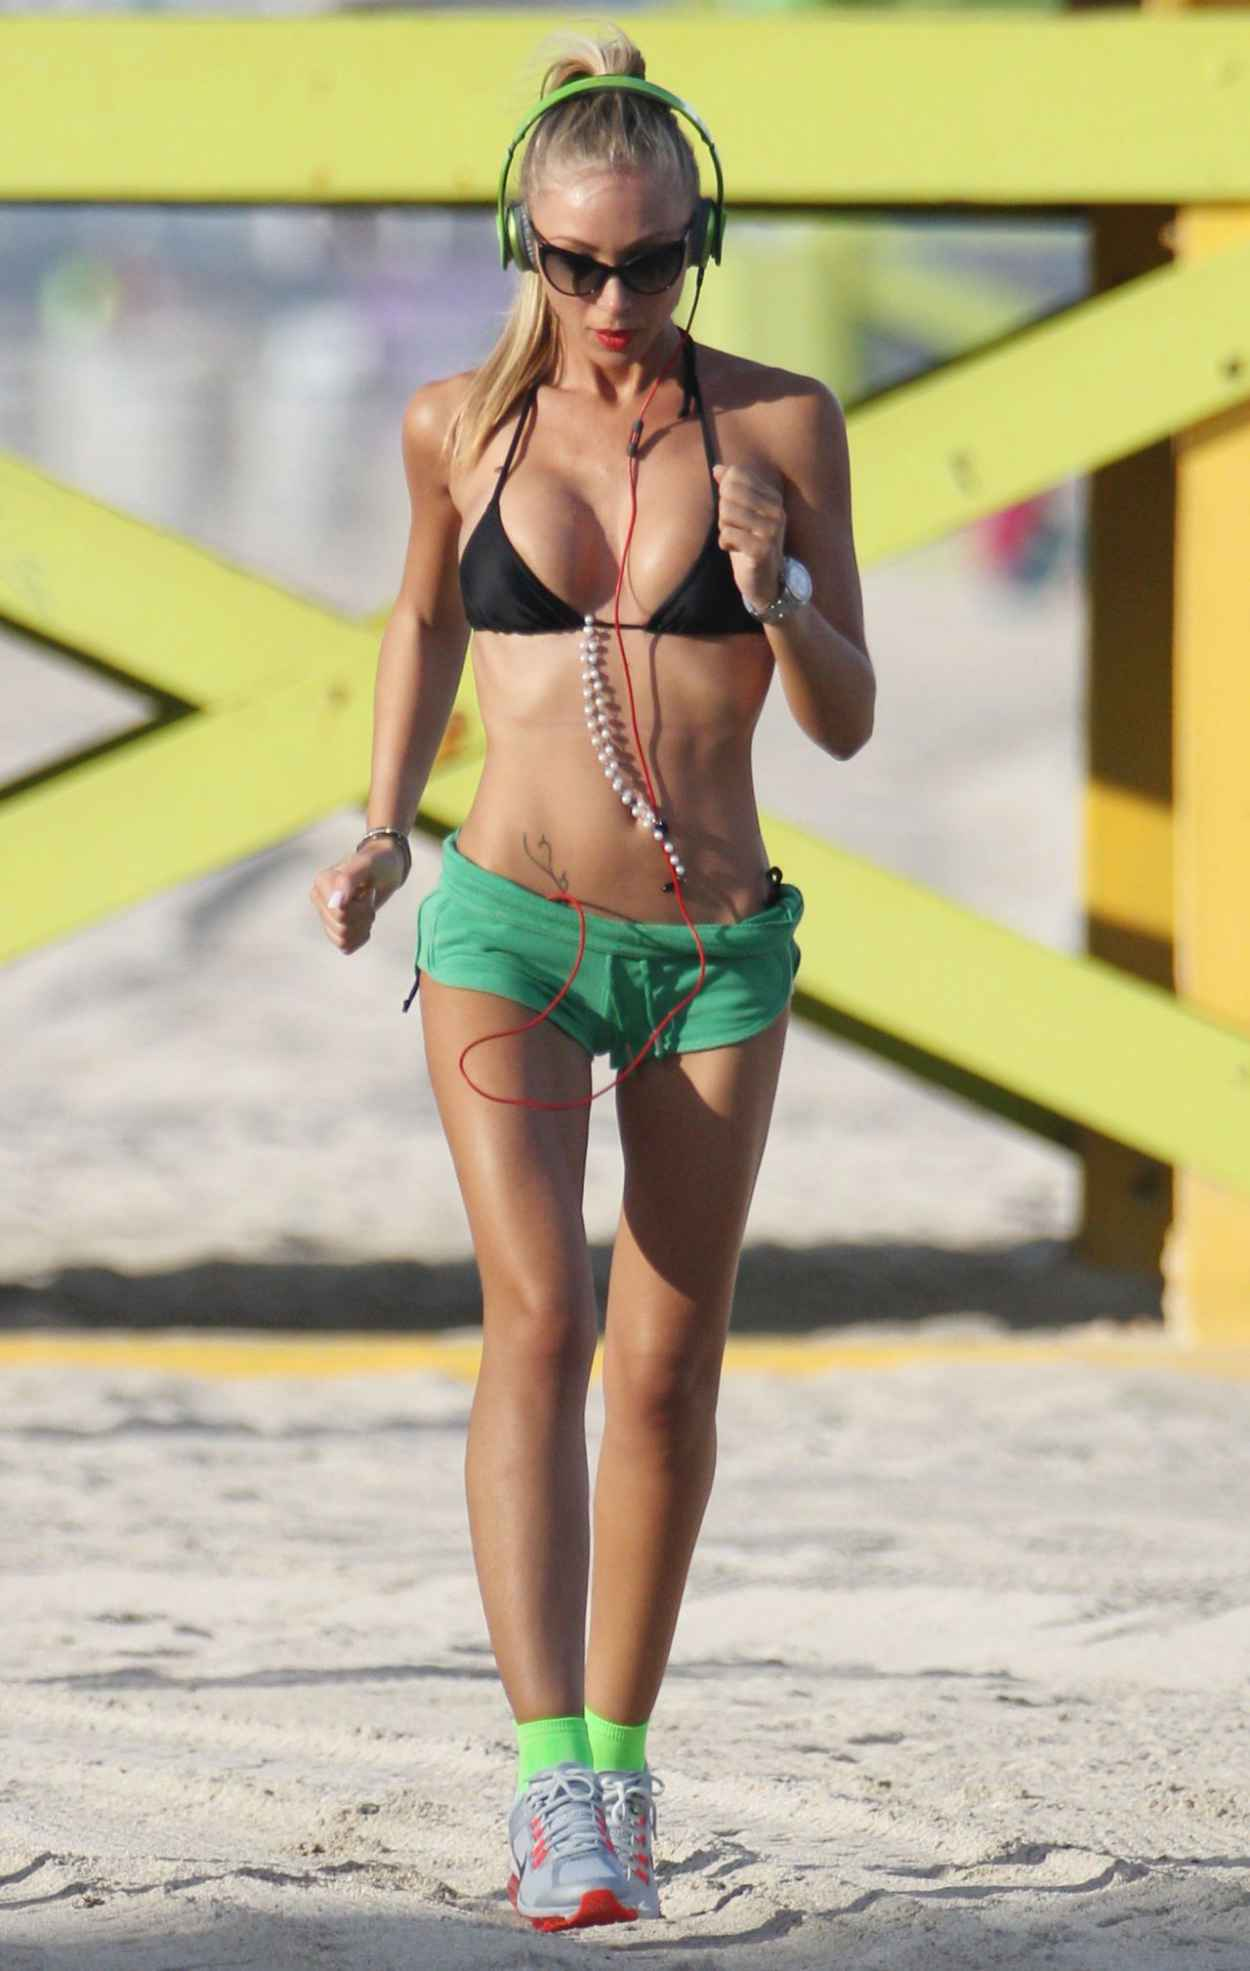 Laura Cremaschi Hot Photos - Exercising in Miami Beach - November 2015-4